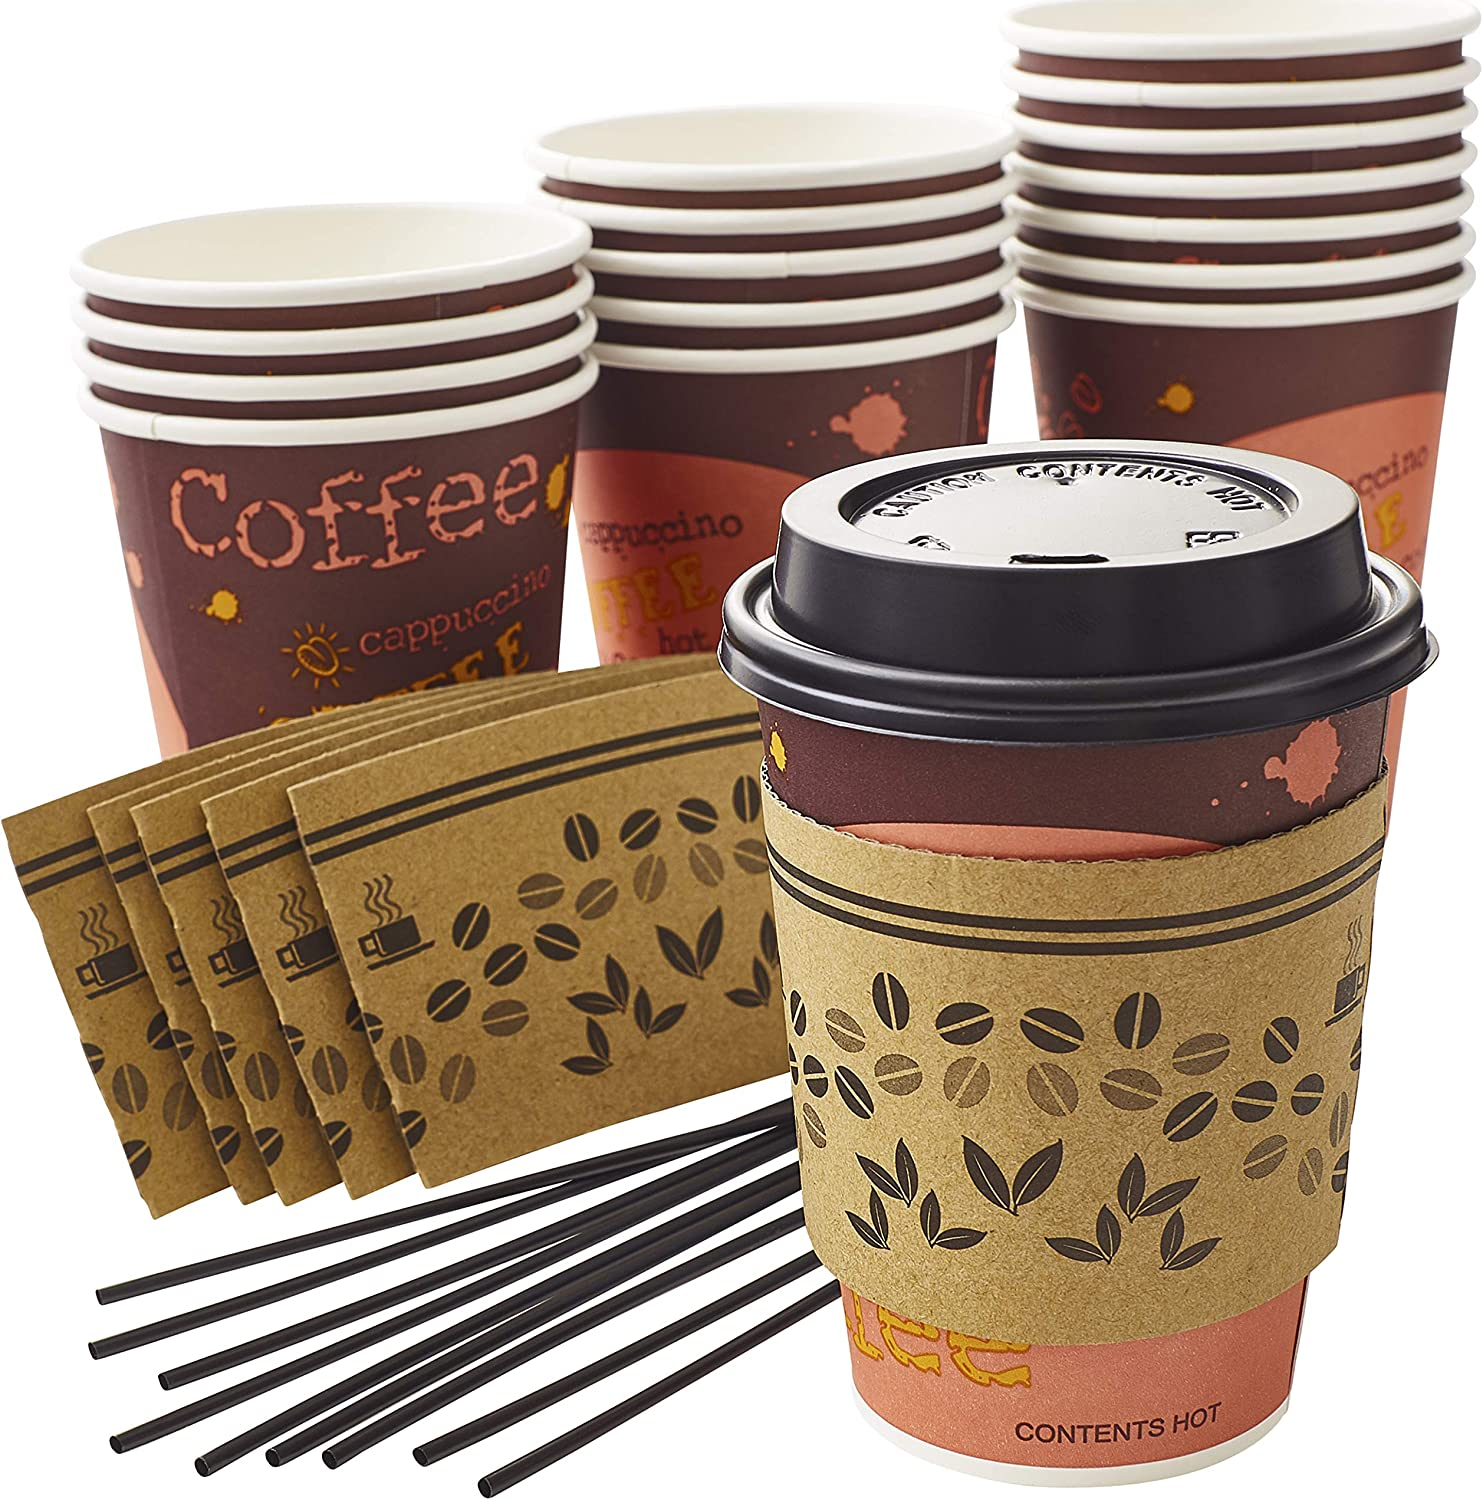 Leak-Free, All-In-One Coffee Cup Set 12 Oz. 150 Pack With Recyclable Cardboard Jacket Sleeves, Stirrers and Dome Lids. Best 12oz Disposable Paper Cups Bulk Bundle Perfect for Hot Beverages or Drinks